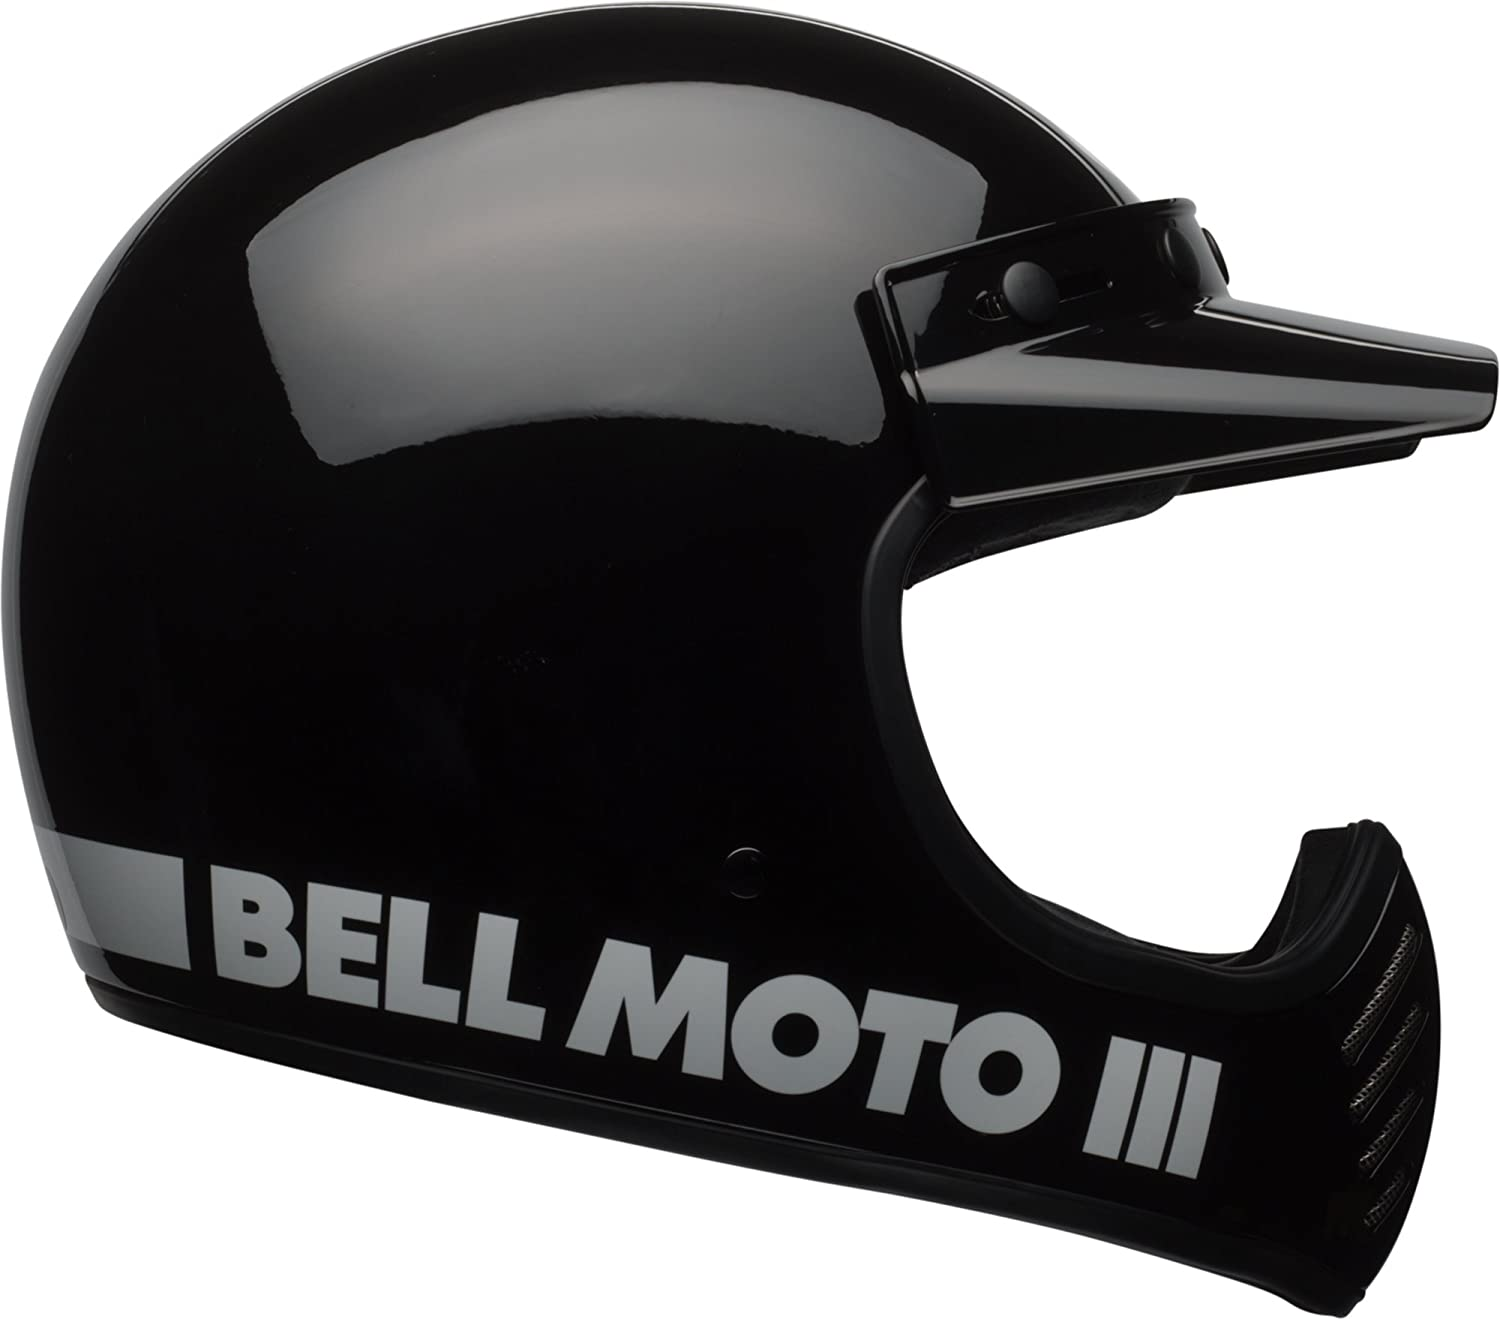 Amazon.com: Bell Moto-3 Off-Road Motorcycle Helmet (Classic Gloss Black, XX-Large): Automotive